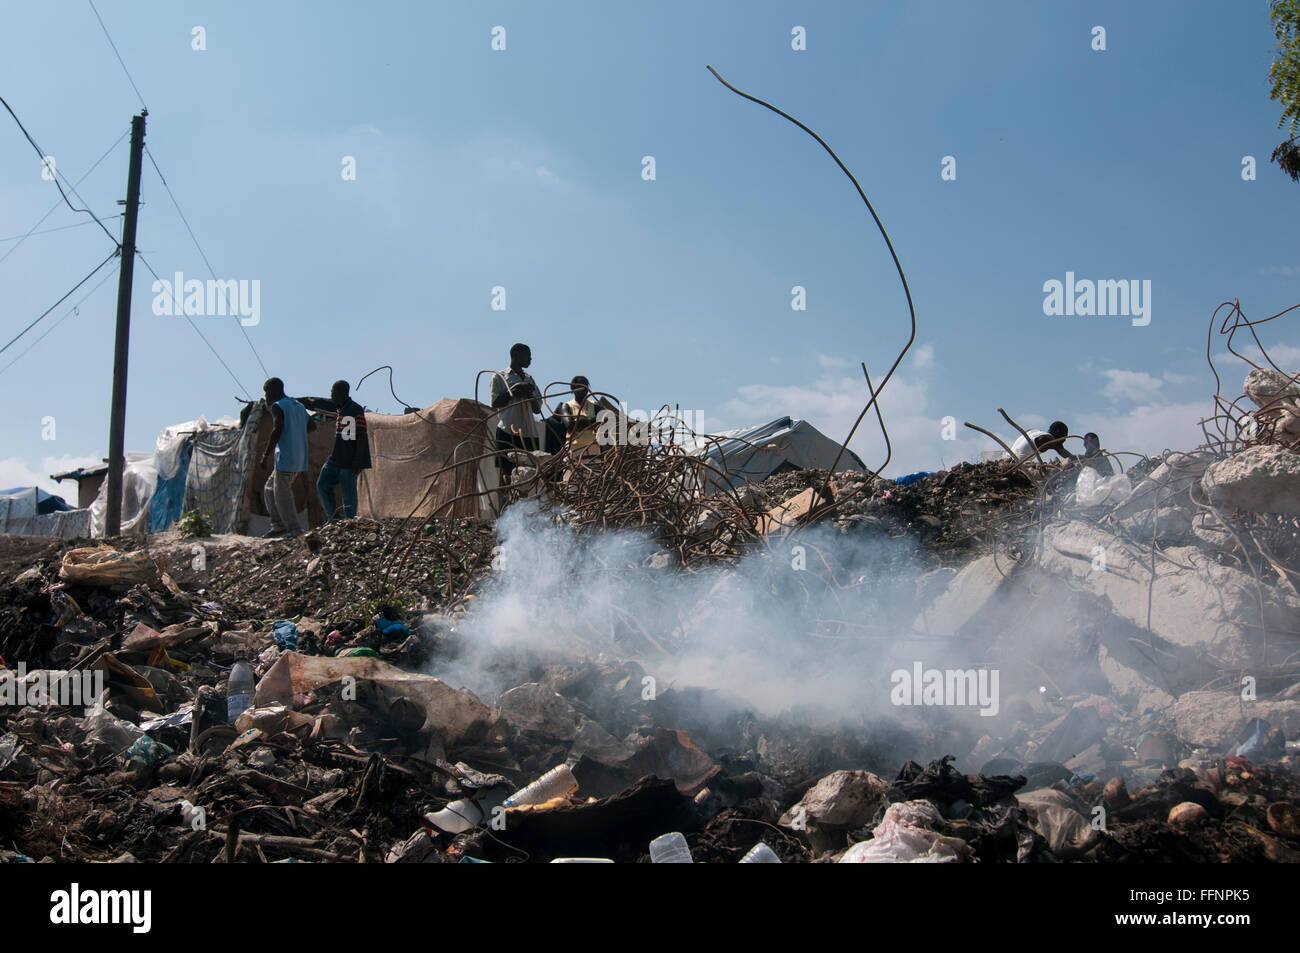 A dump with burning garbage at a makeshift camp set up for survivors of a 7.0 magnitude earthquake which struck - Stock Image